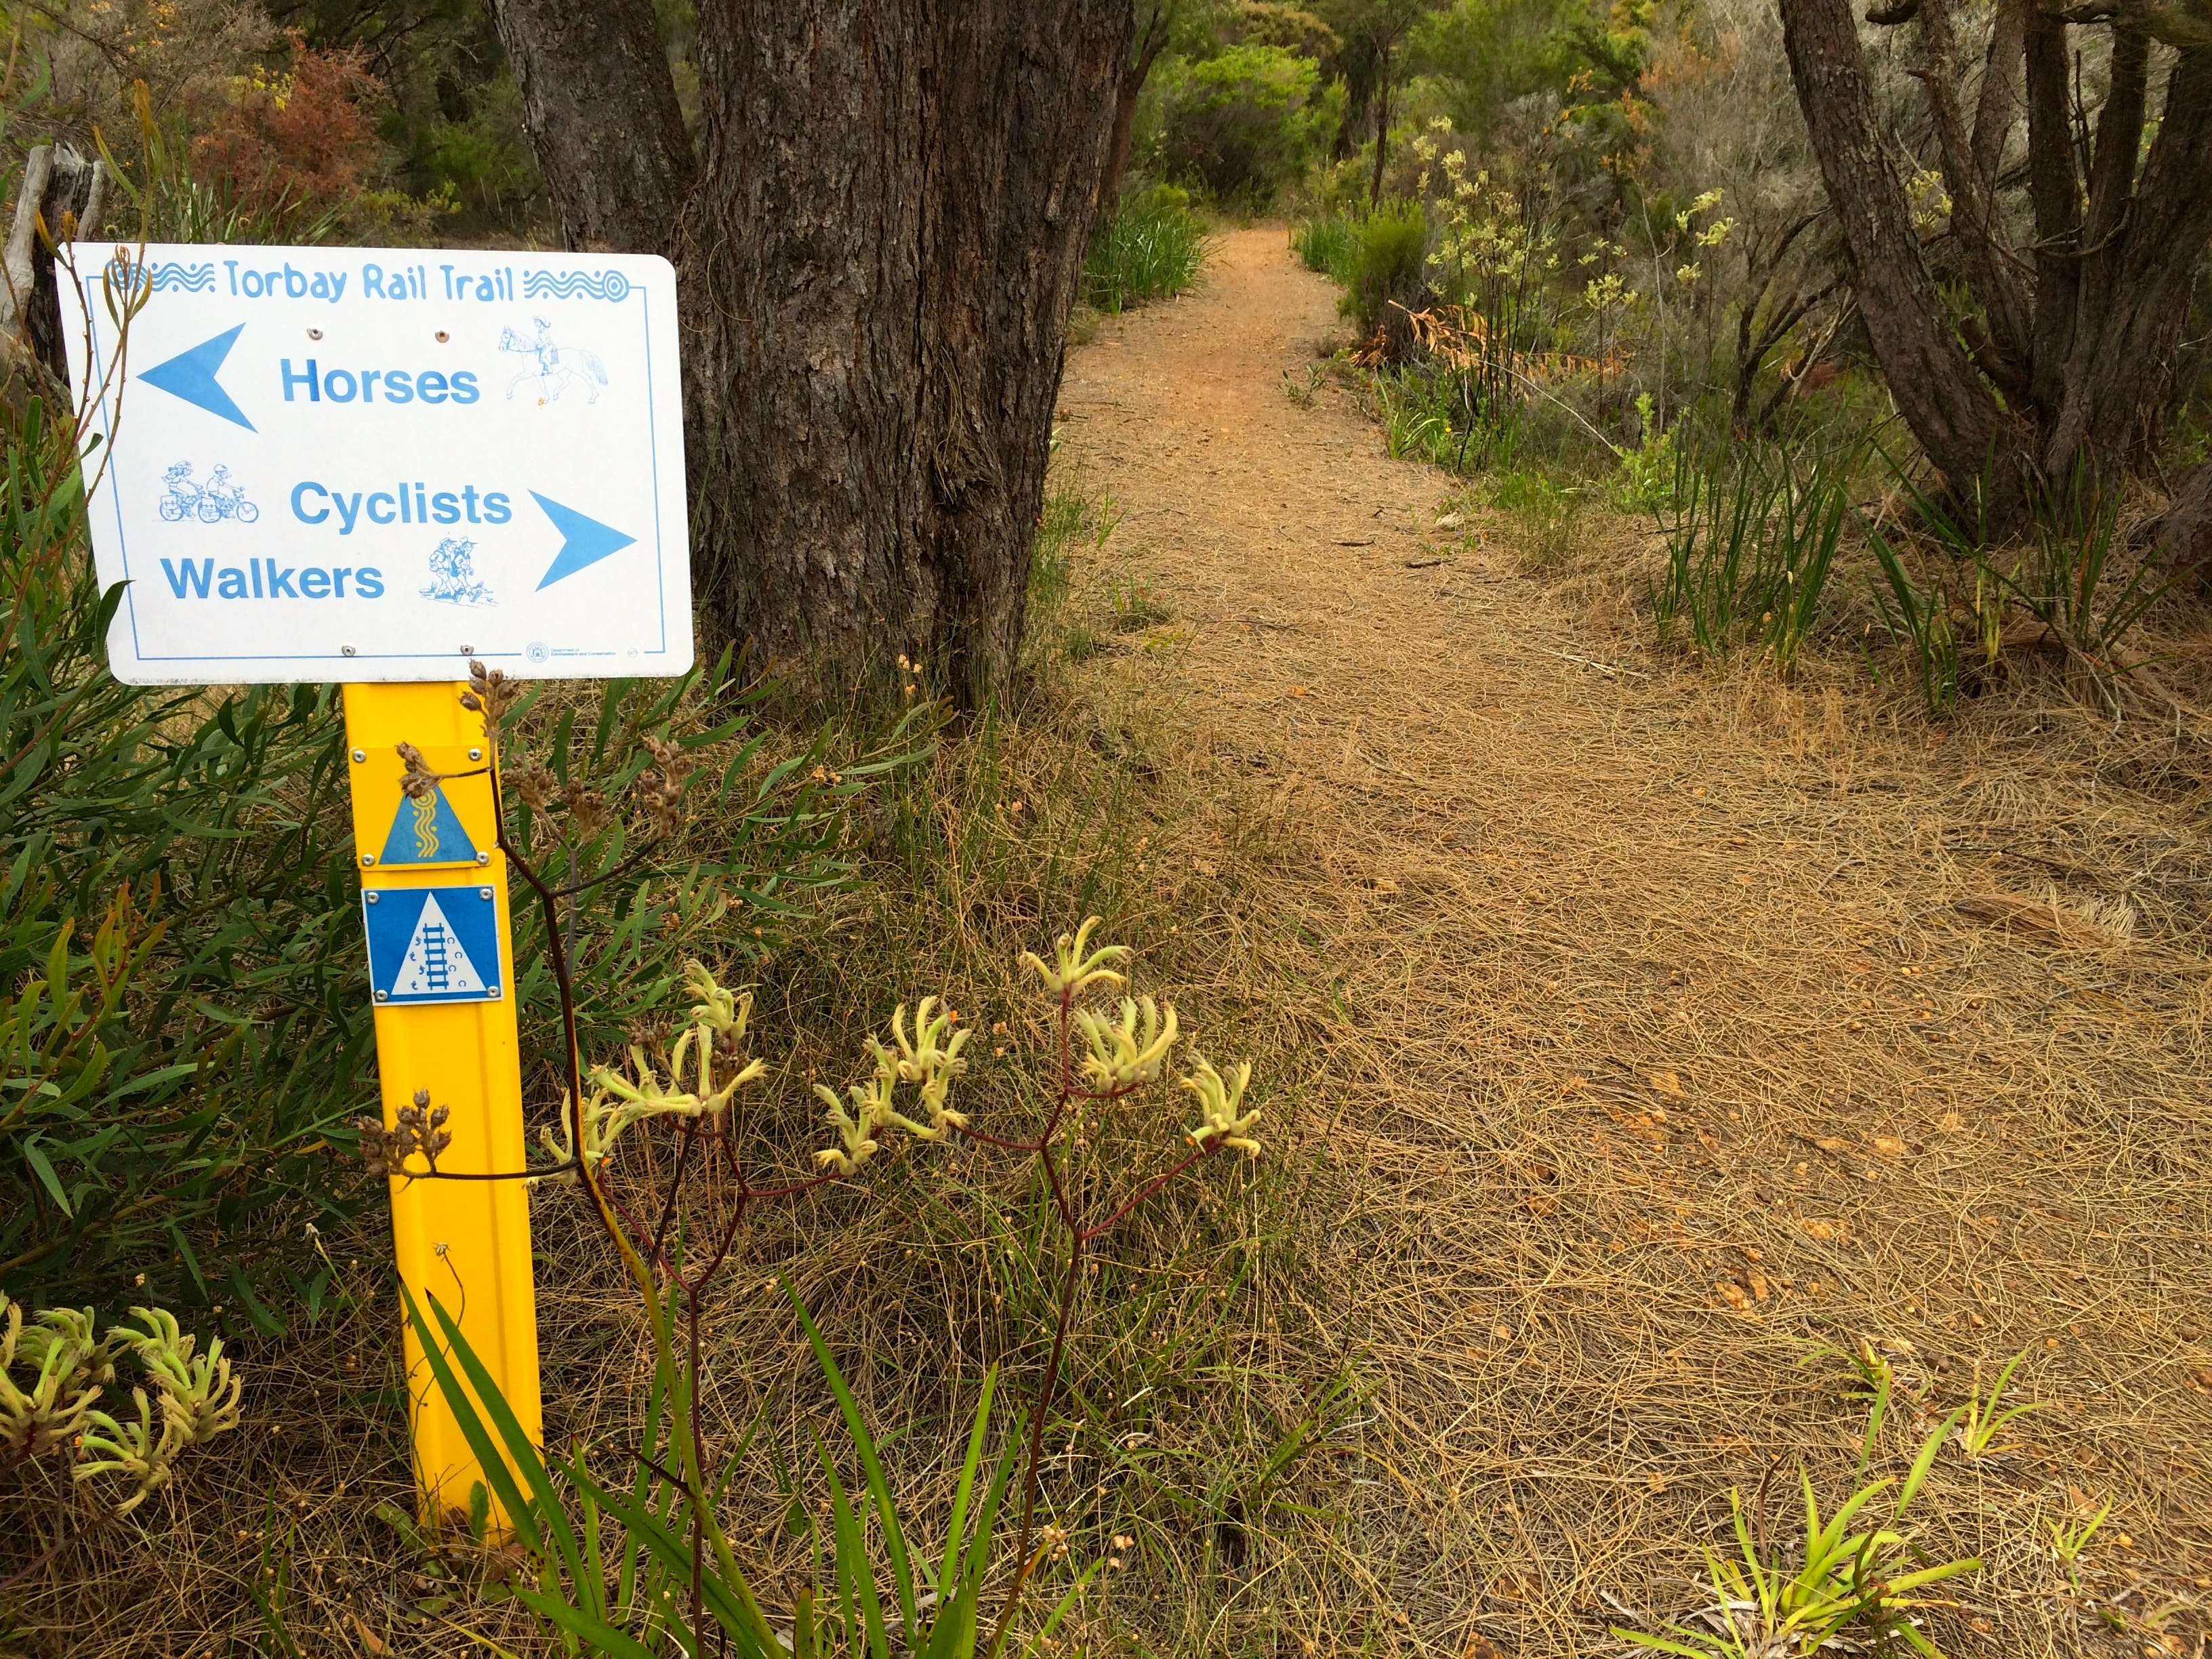 Torbay Rail Trail - easy to understand